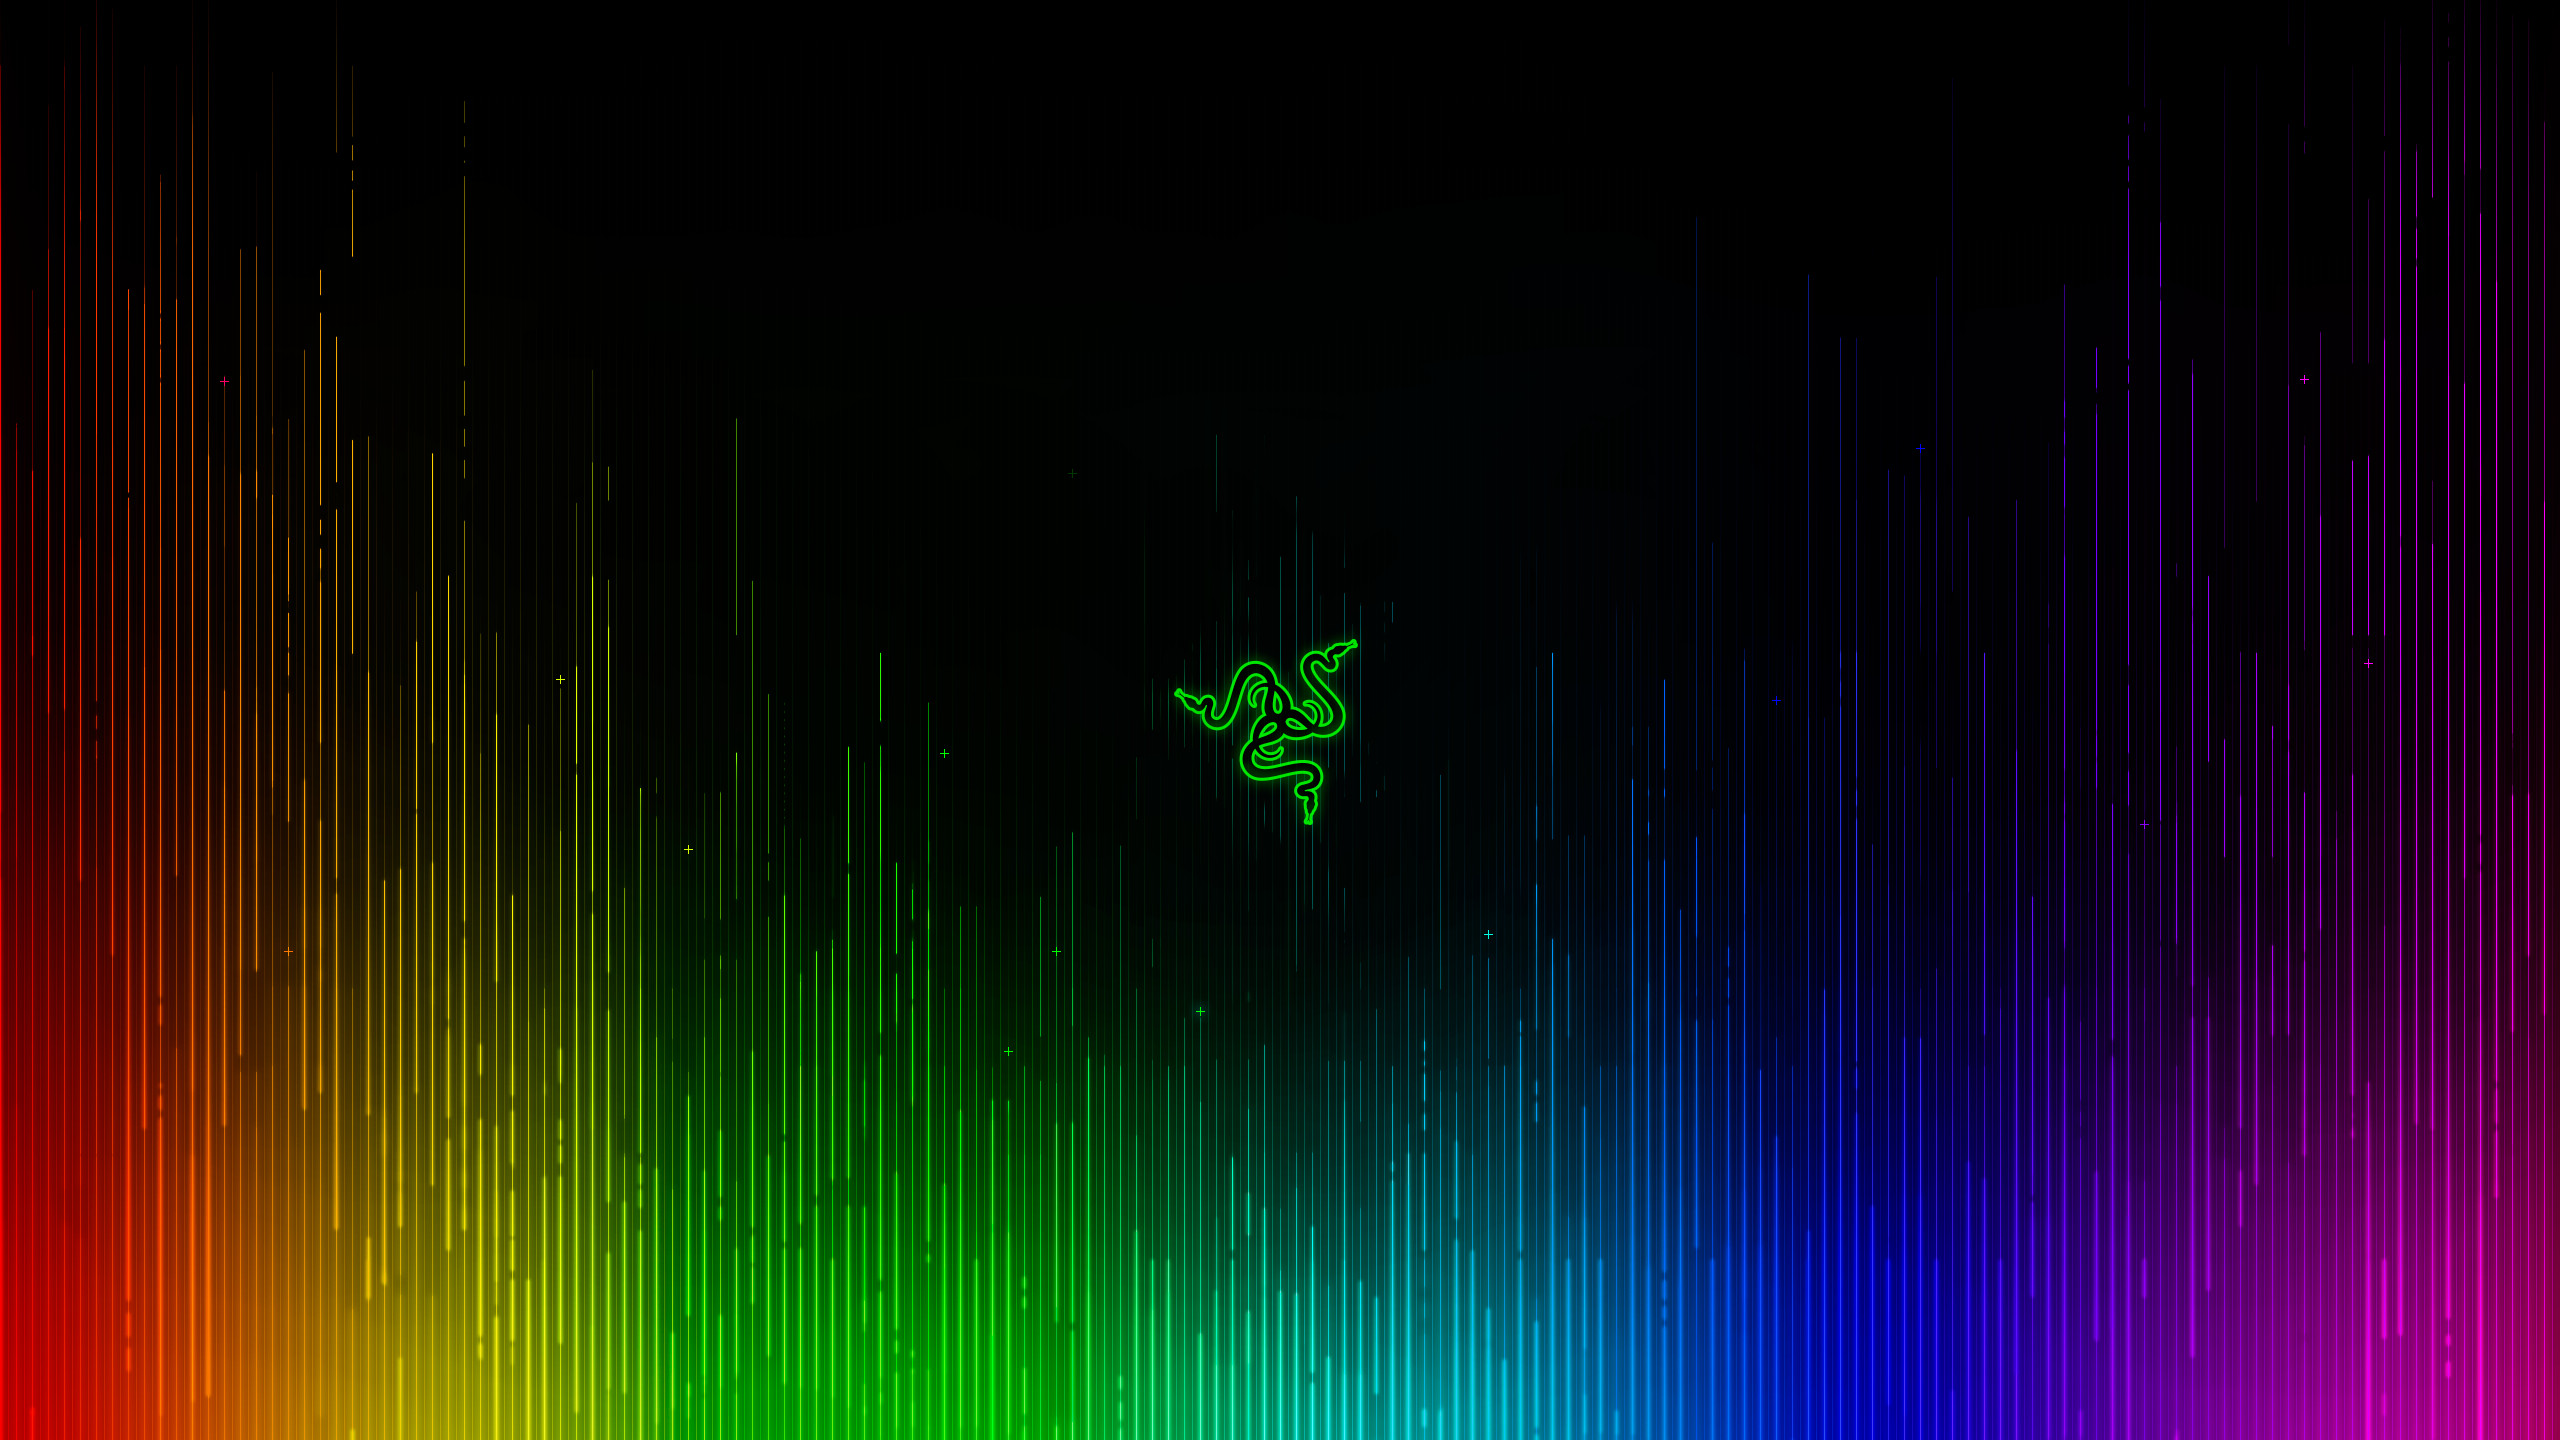 Razer Wallpaper 1920x1080 Hd 92 Images